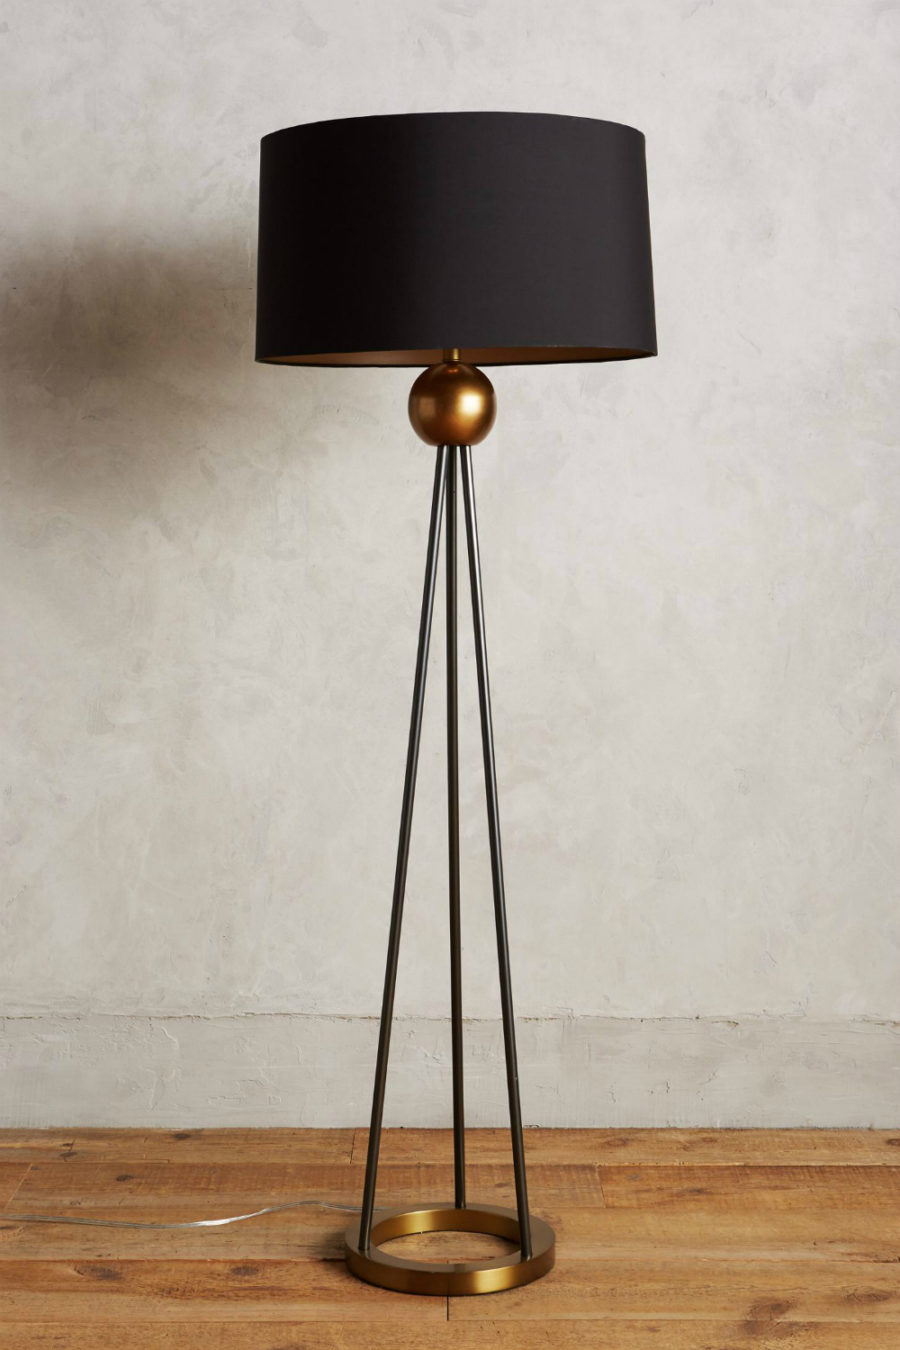 25 absolutely not boring tripod floor lamp designs view in gallery triangulate floor lamp ensemble 900x1350 25 absolutely not boring tripod floor lamp designs solutioingenieria Image collections